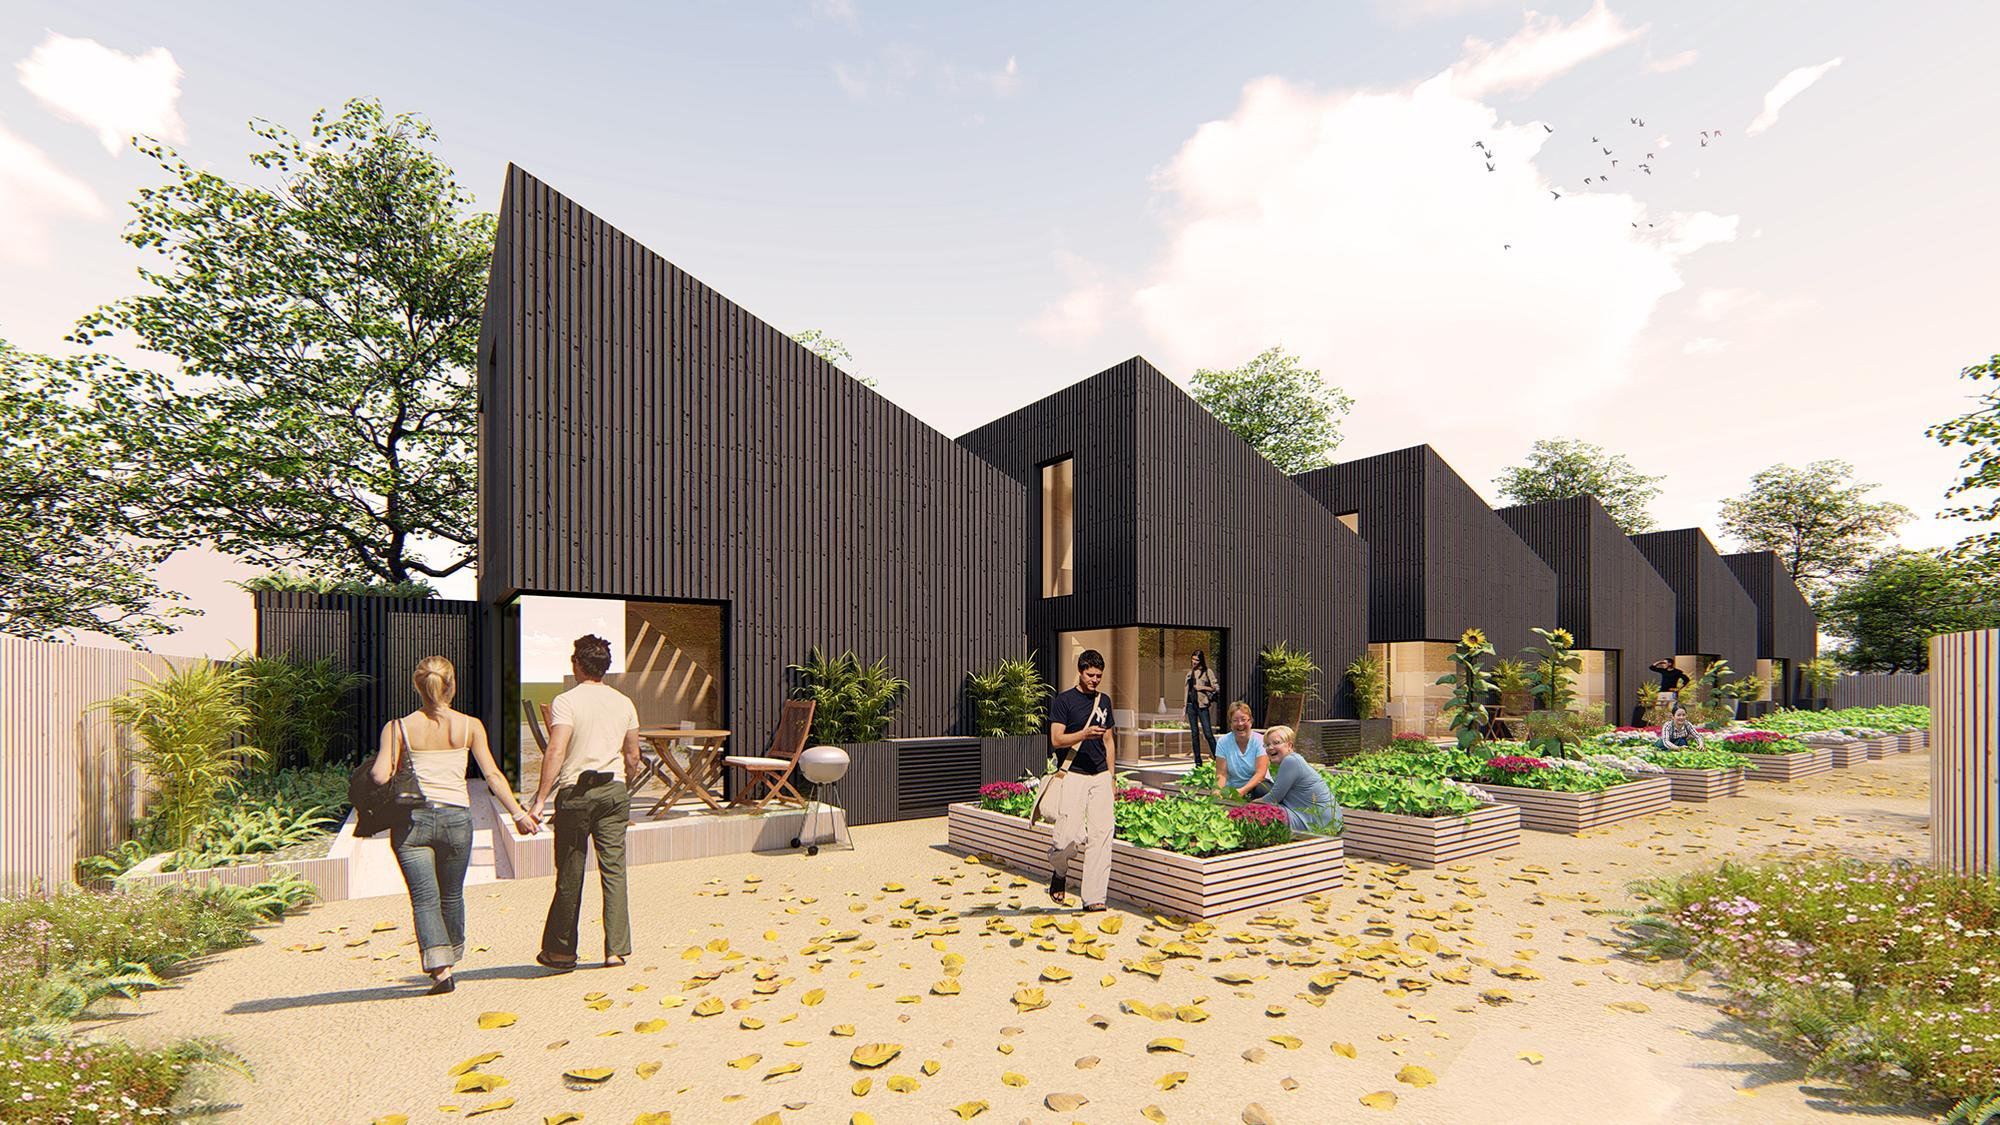 rendering of people in the yard of a row of houses with dark cladding, slanted roofs and gardens in each yard